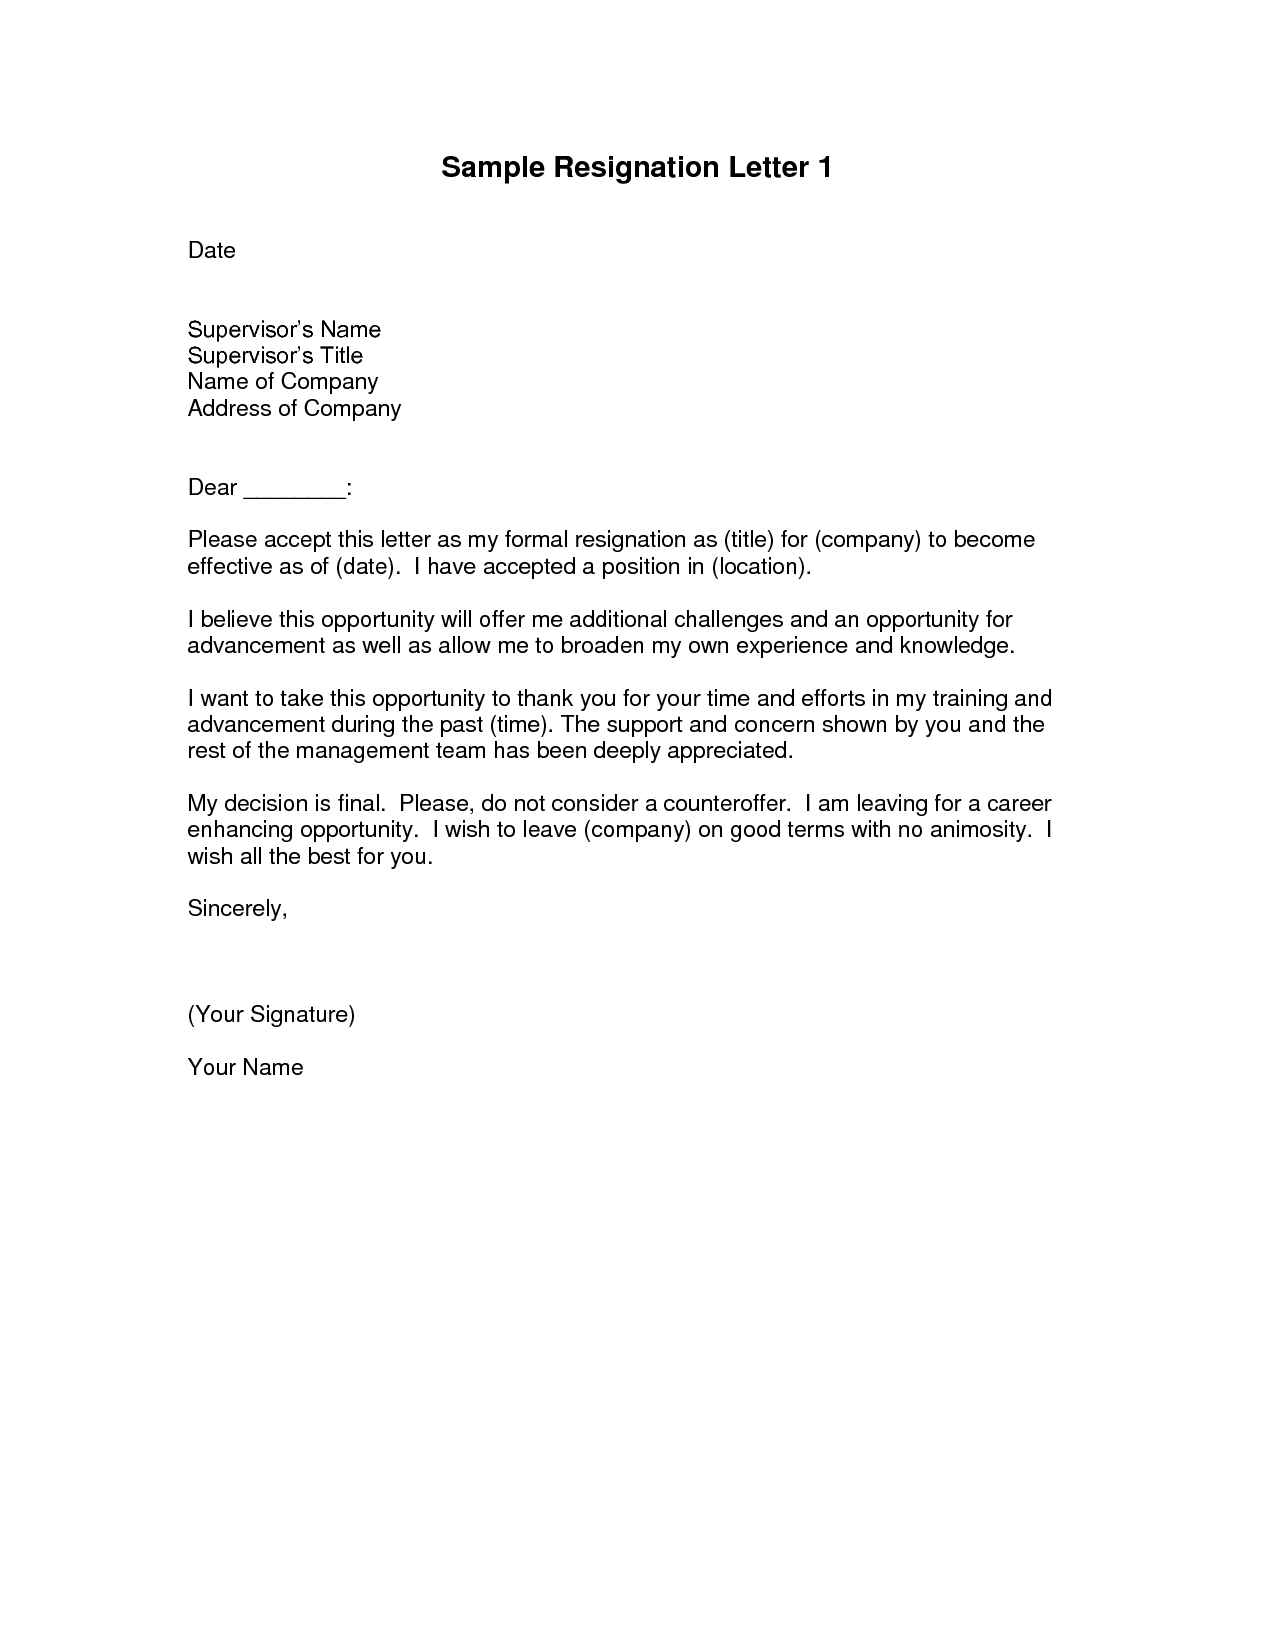 Example Of Resignation Letter | Sample Resignation Letter Template Professional Naresh Pinterest